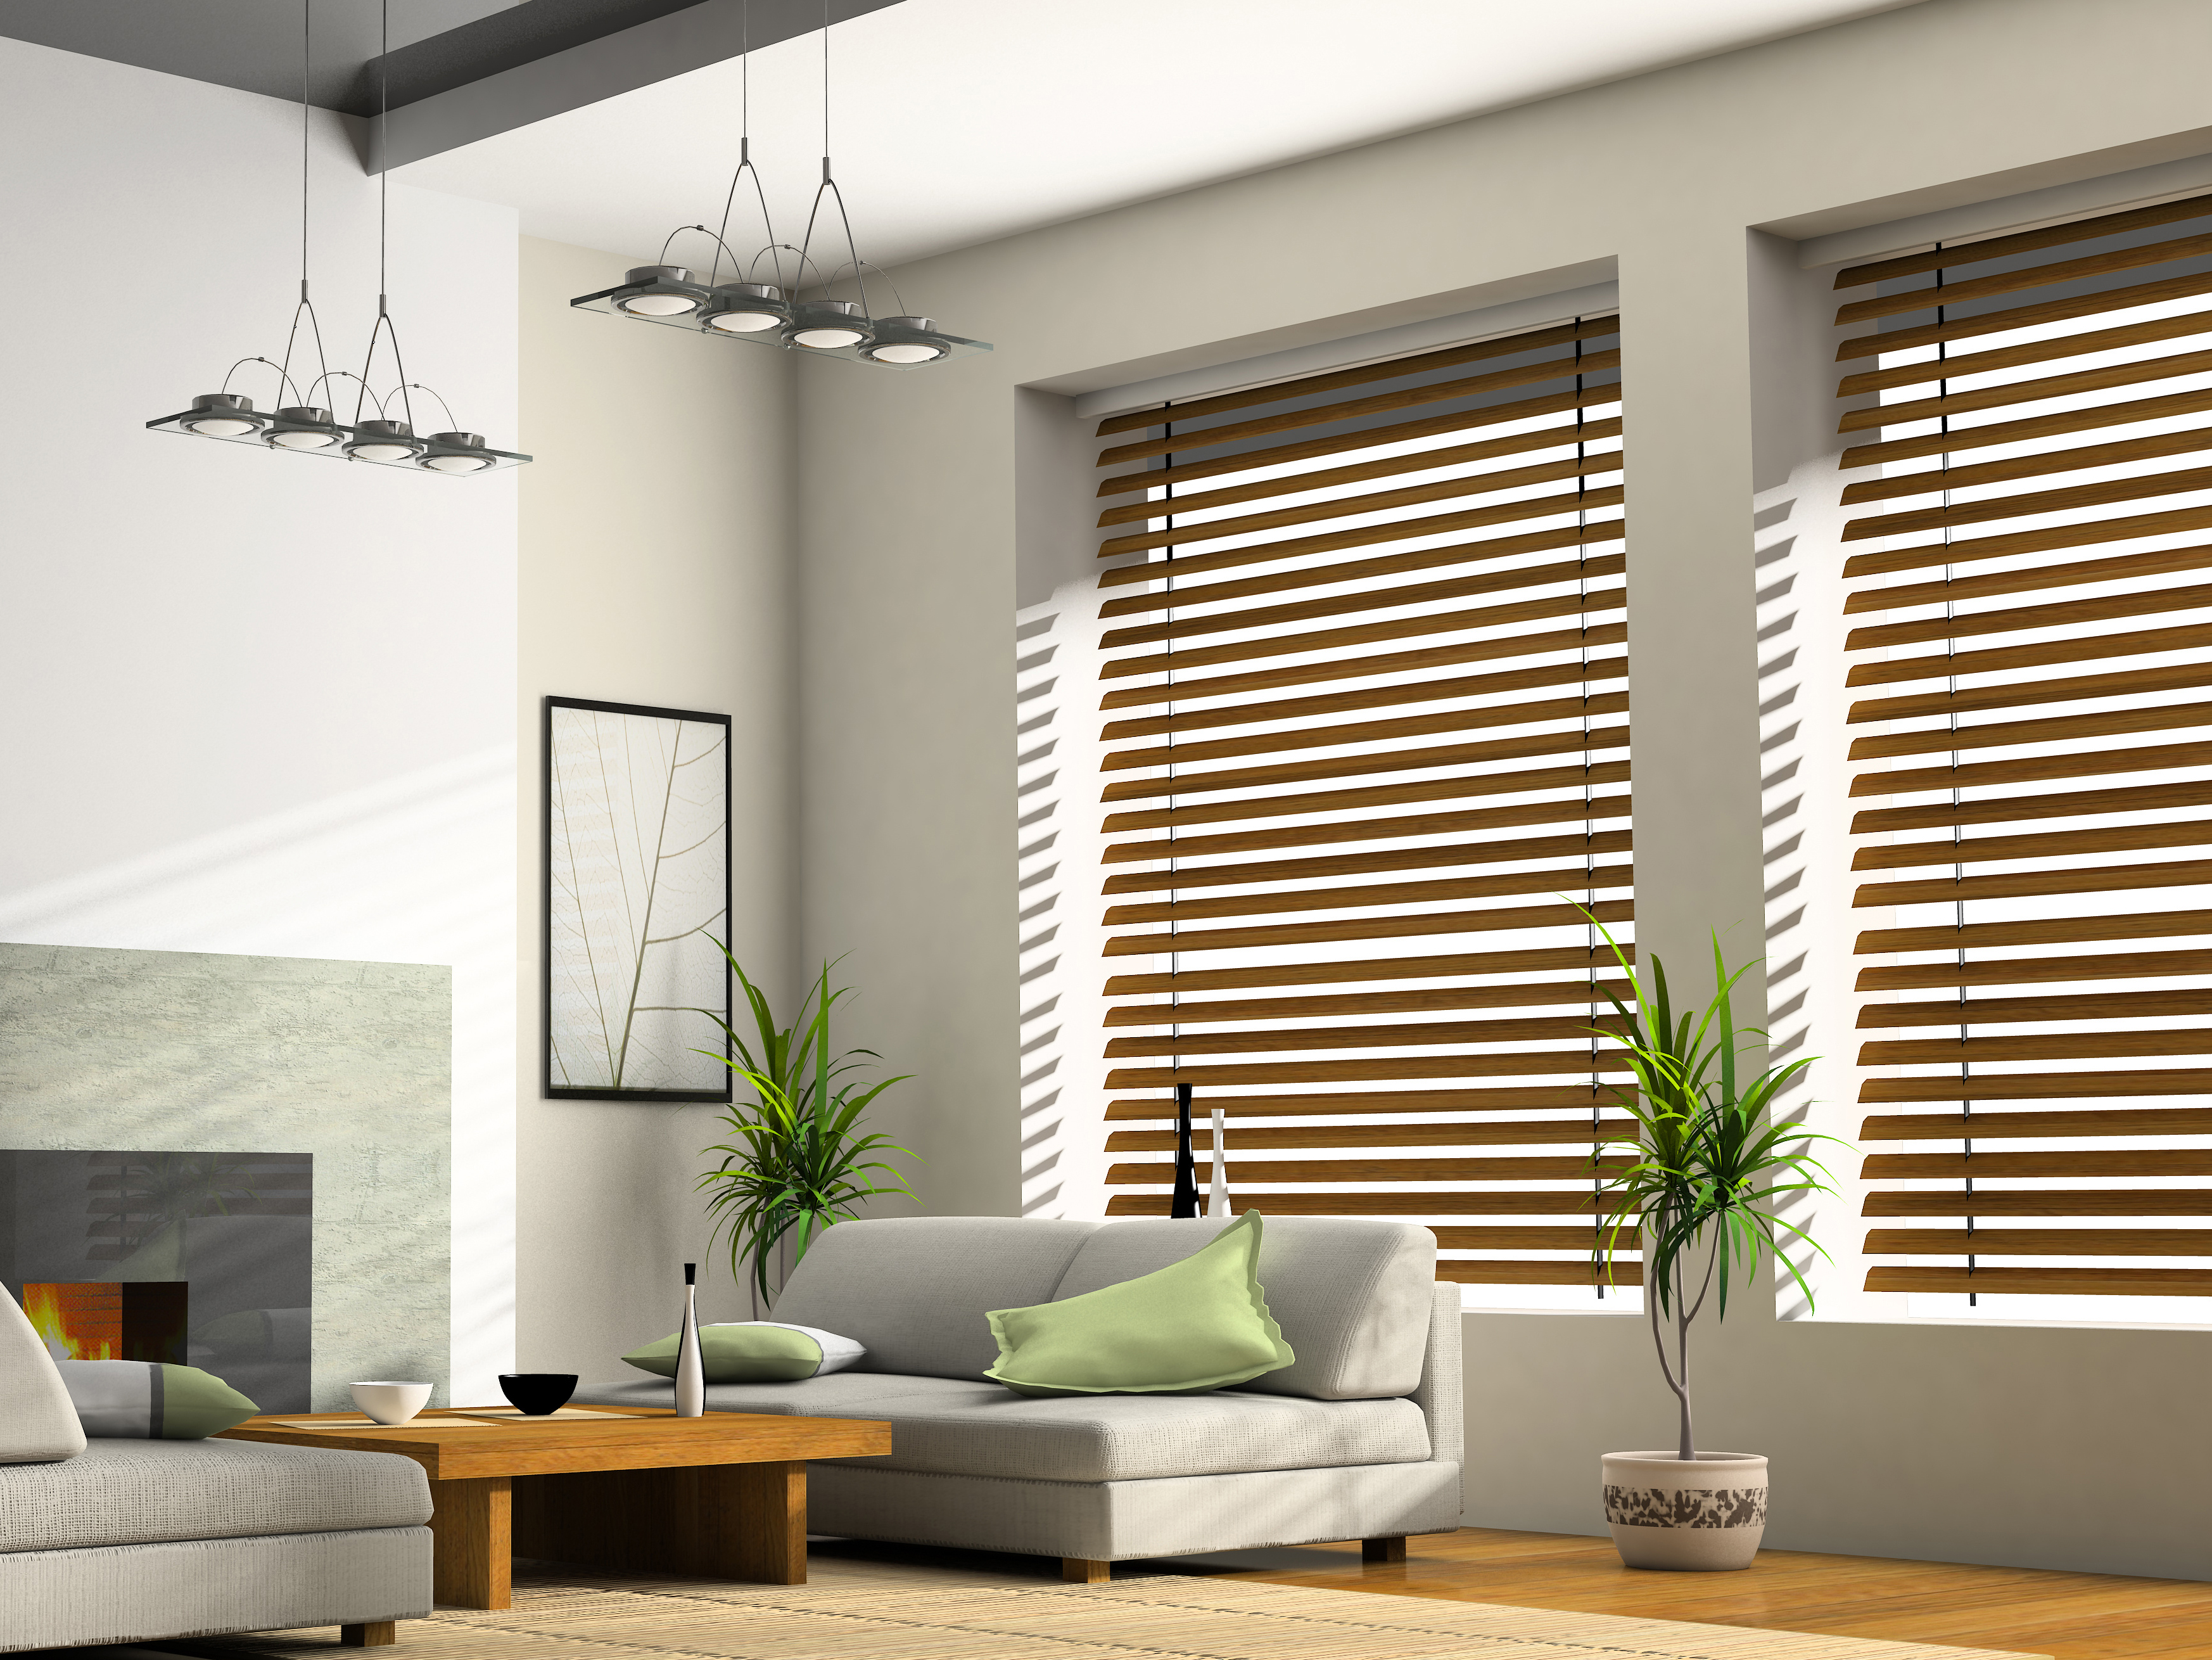 pin s super easy bamboo difference blinds diy micro a you mini this check whitewash one the can out